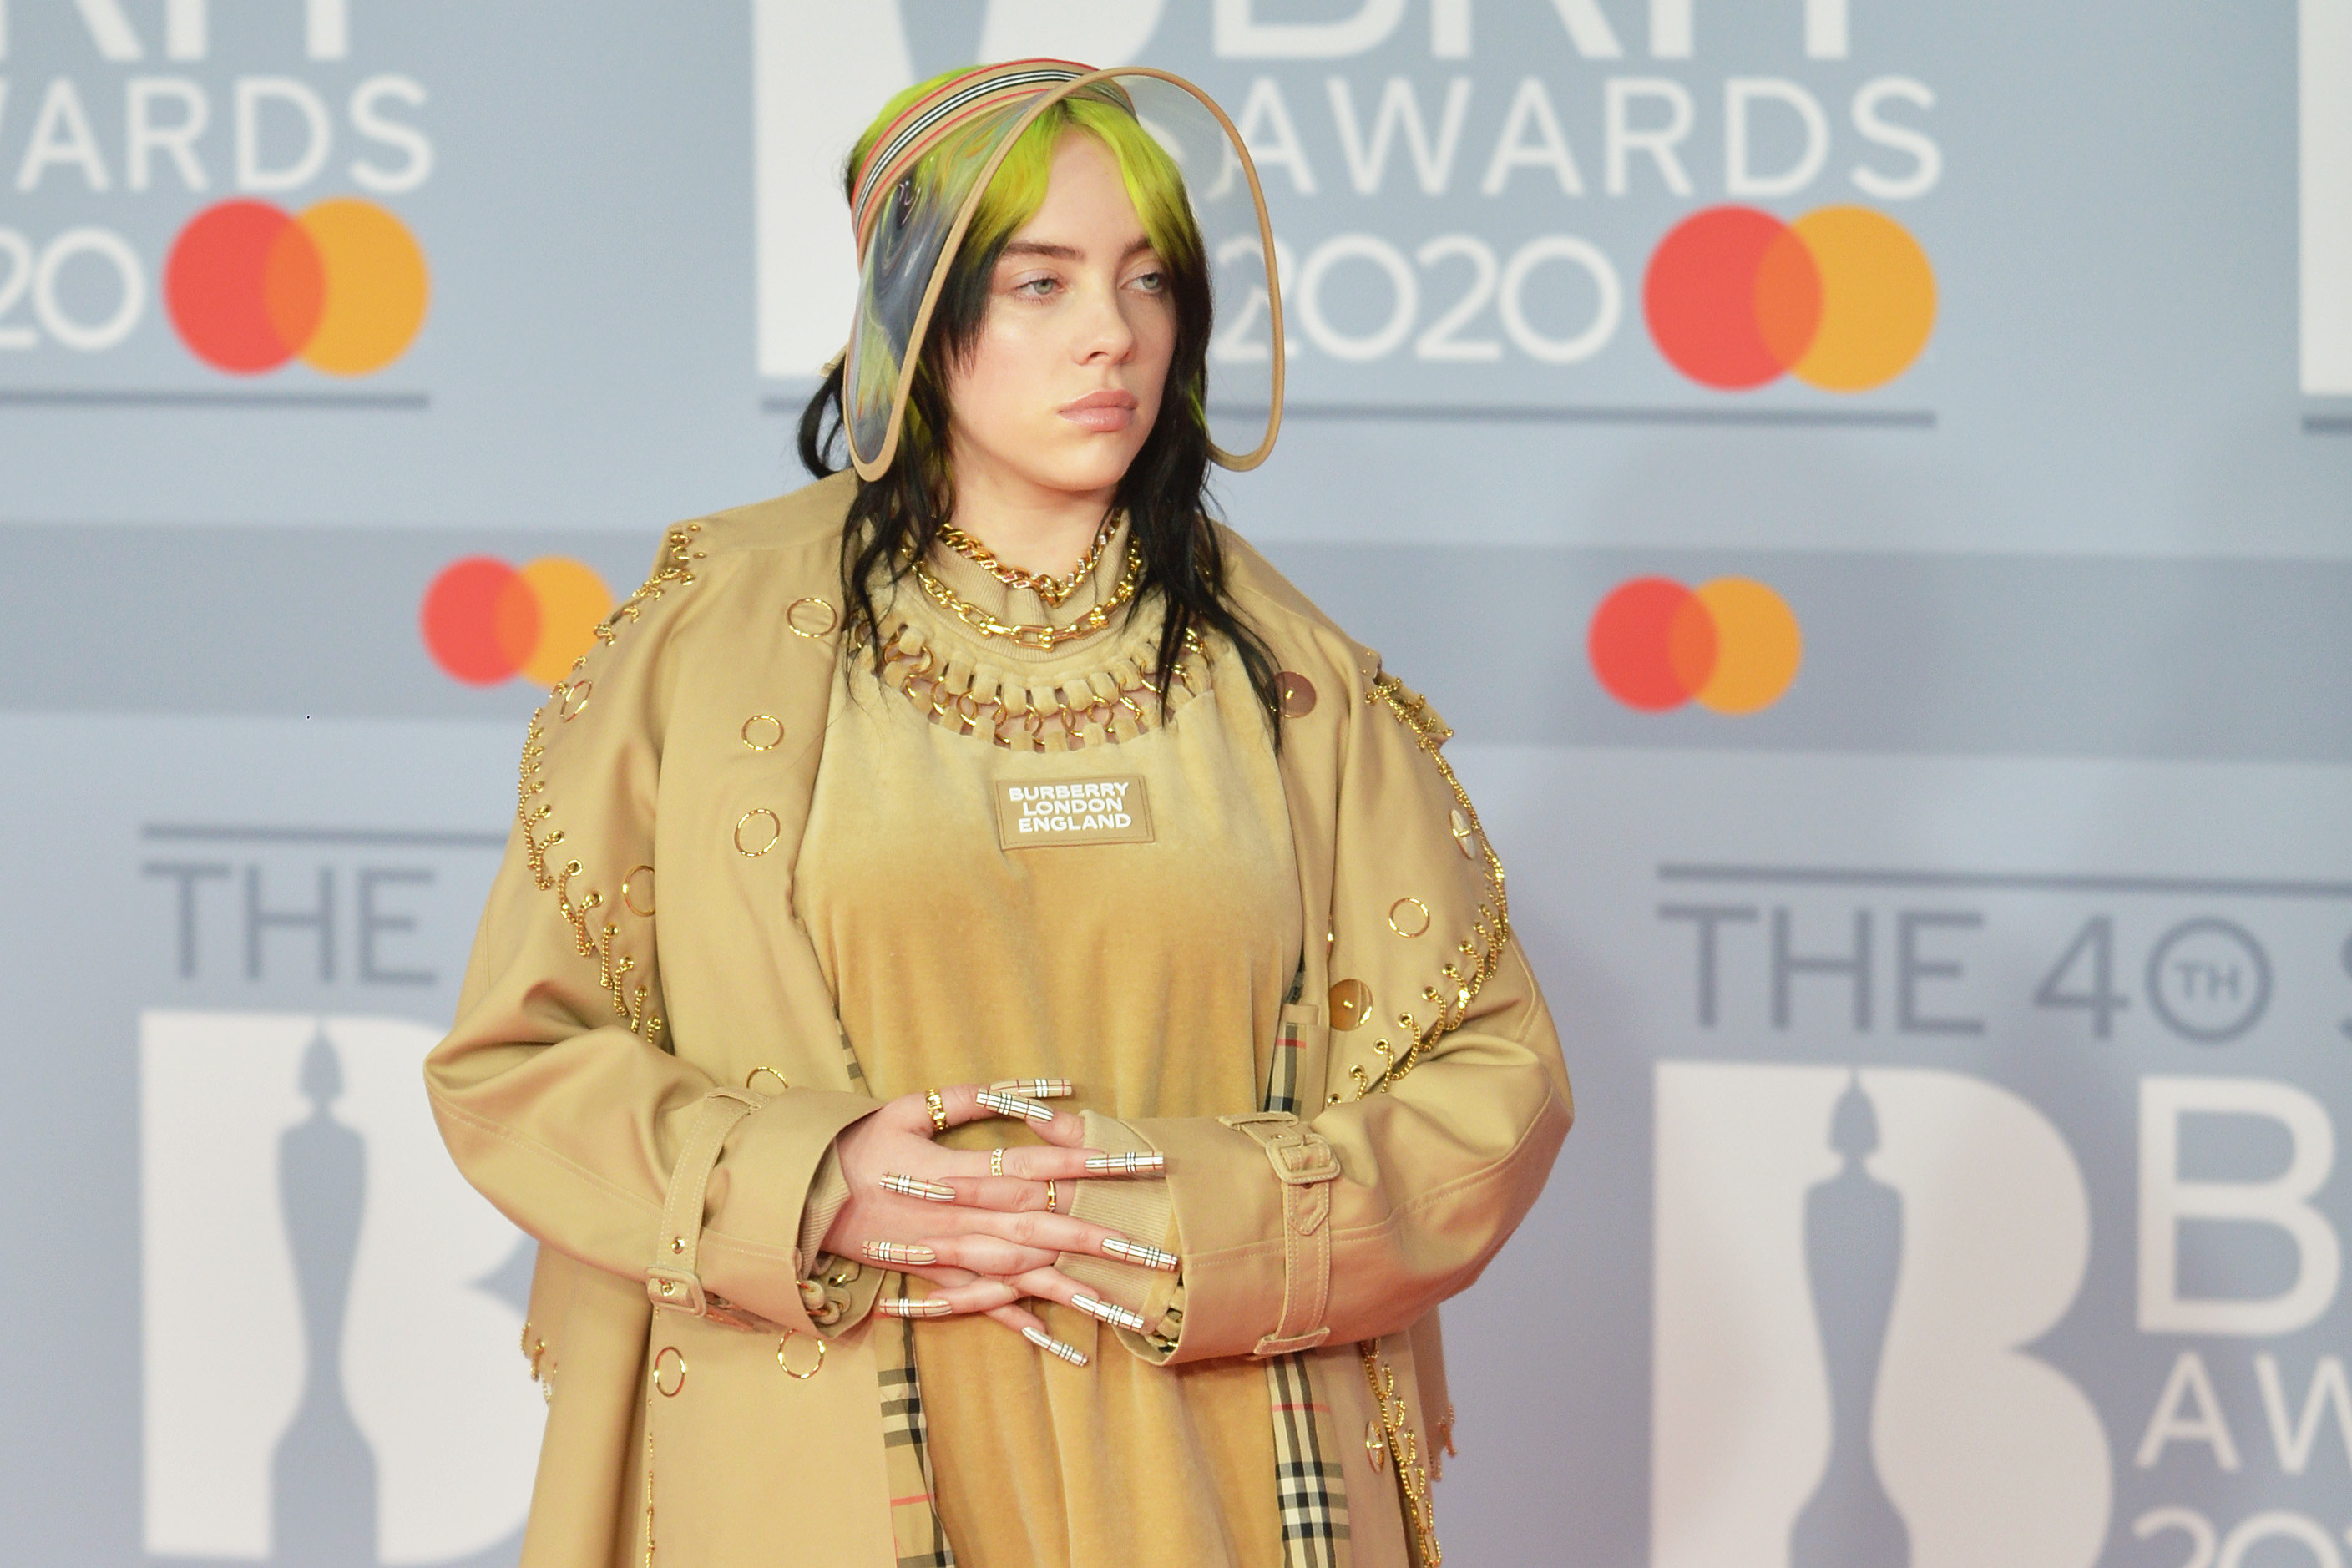 Billie on the red carpet of the 2020 Brit Awards wearing a light-colored jacket and top and an oversize visor